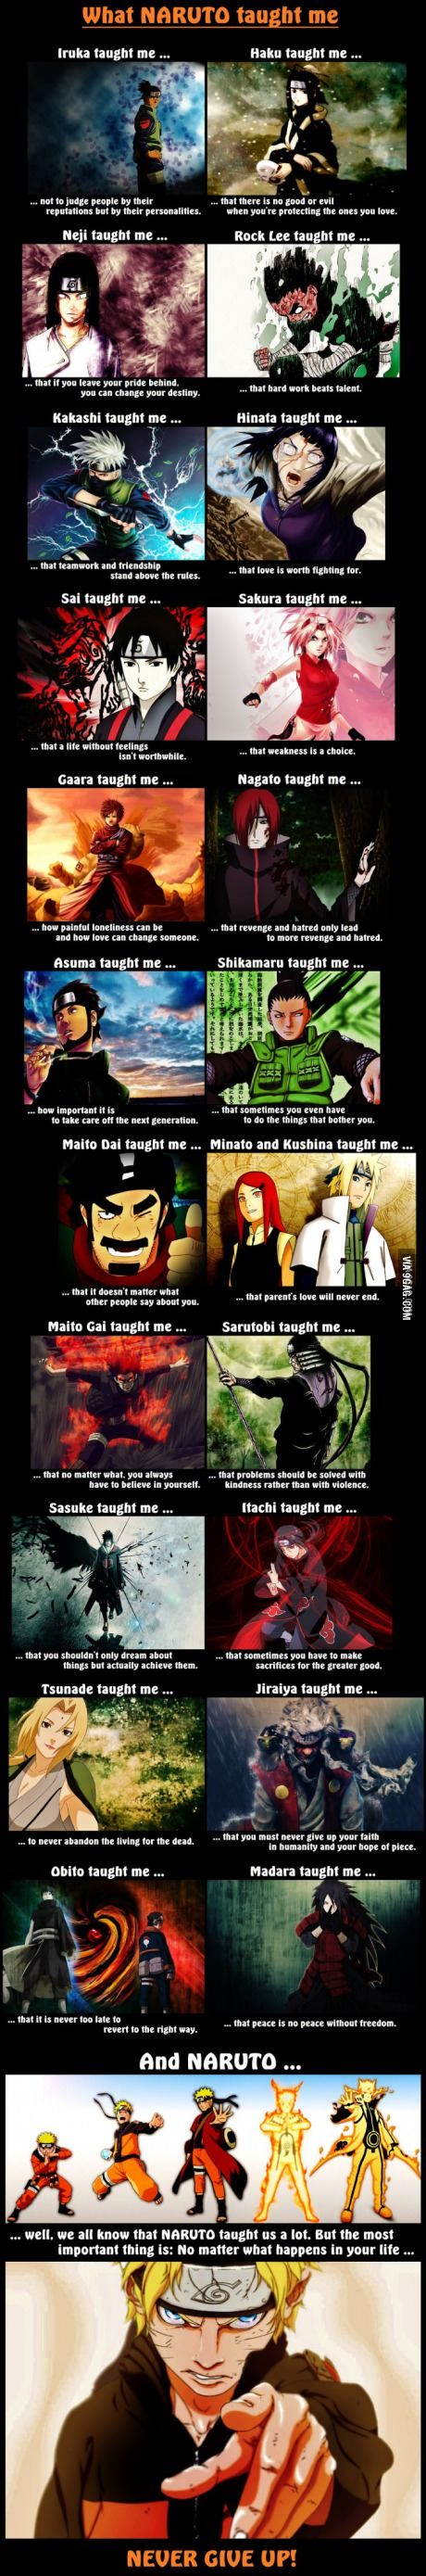 What Naruto taught us